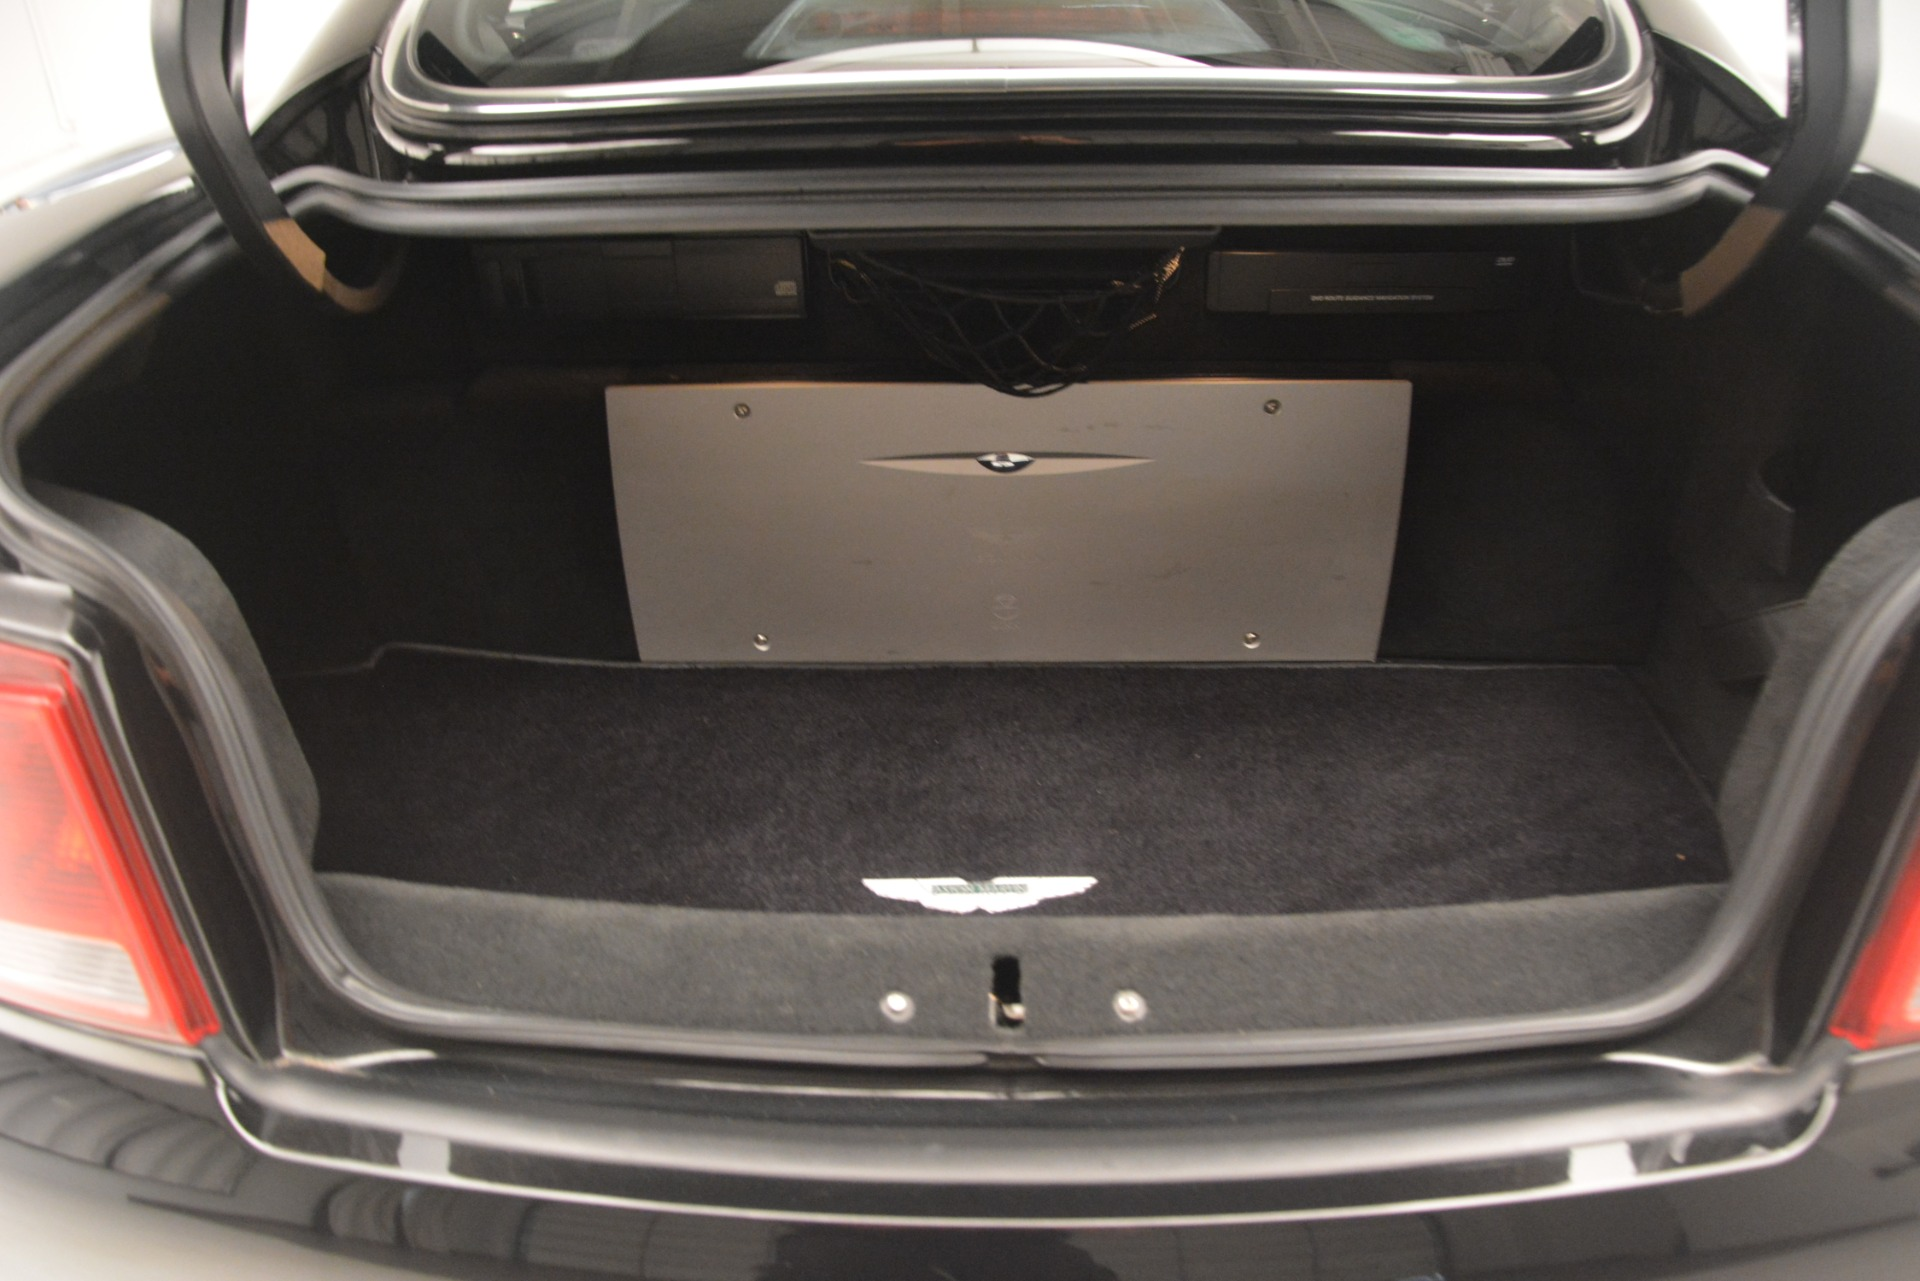 Used 2004 Aston Martin V12 Vanquish  For Sale In Greenwich, CT 3160_p16